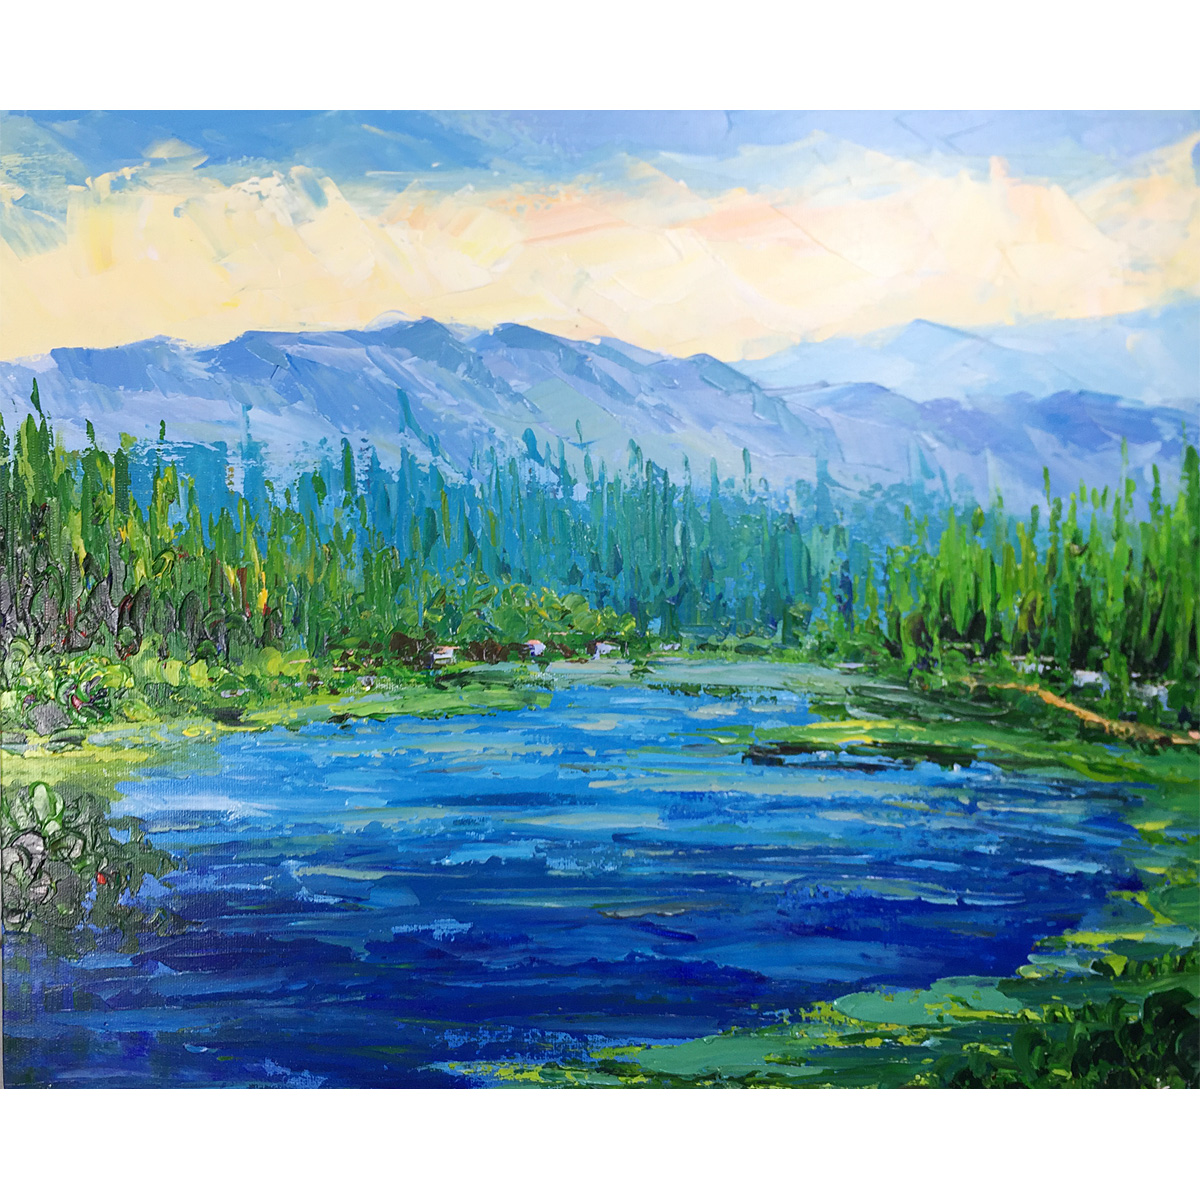 Hand Painted Abstract Nature Landscape Oil Paintings on Canvas Rivers Woods Mountain Scenery Artwork